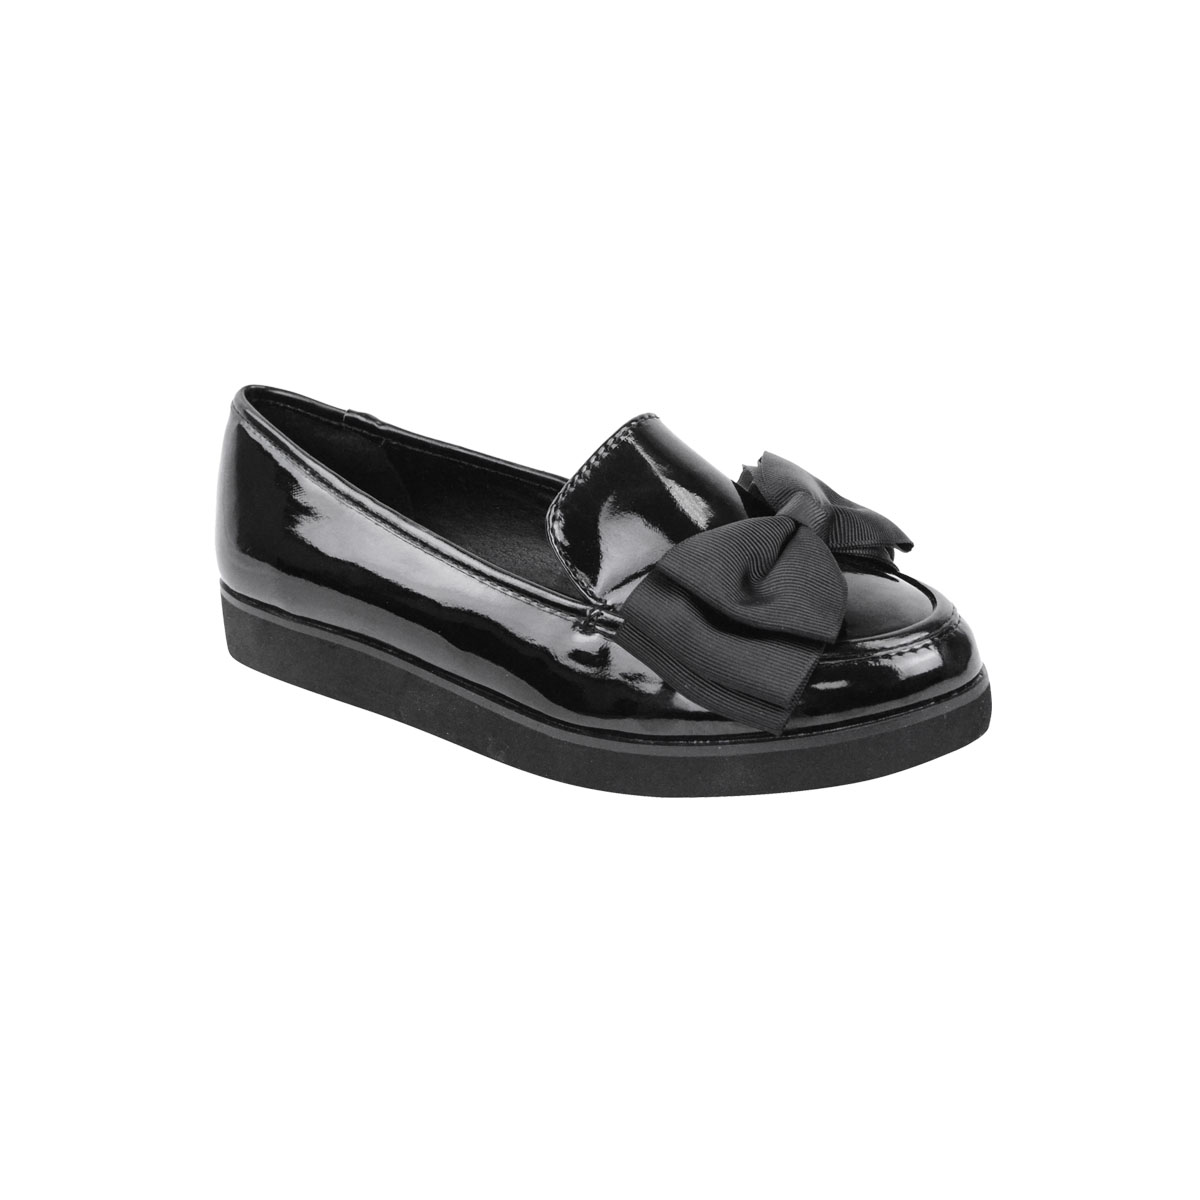 WOMENS-LADIES-GIRLS-NEW-FLAT-OFFICE-SCHOOL-SHOES-SMART-FORMAL-LOAFERS-PUMPS-SIZE thumbnail 5